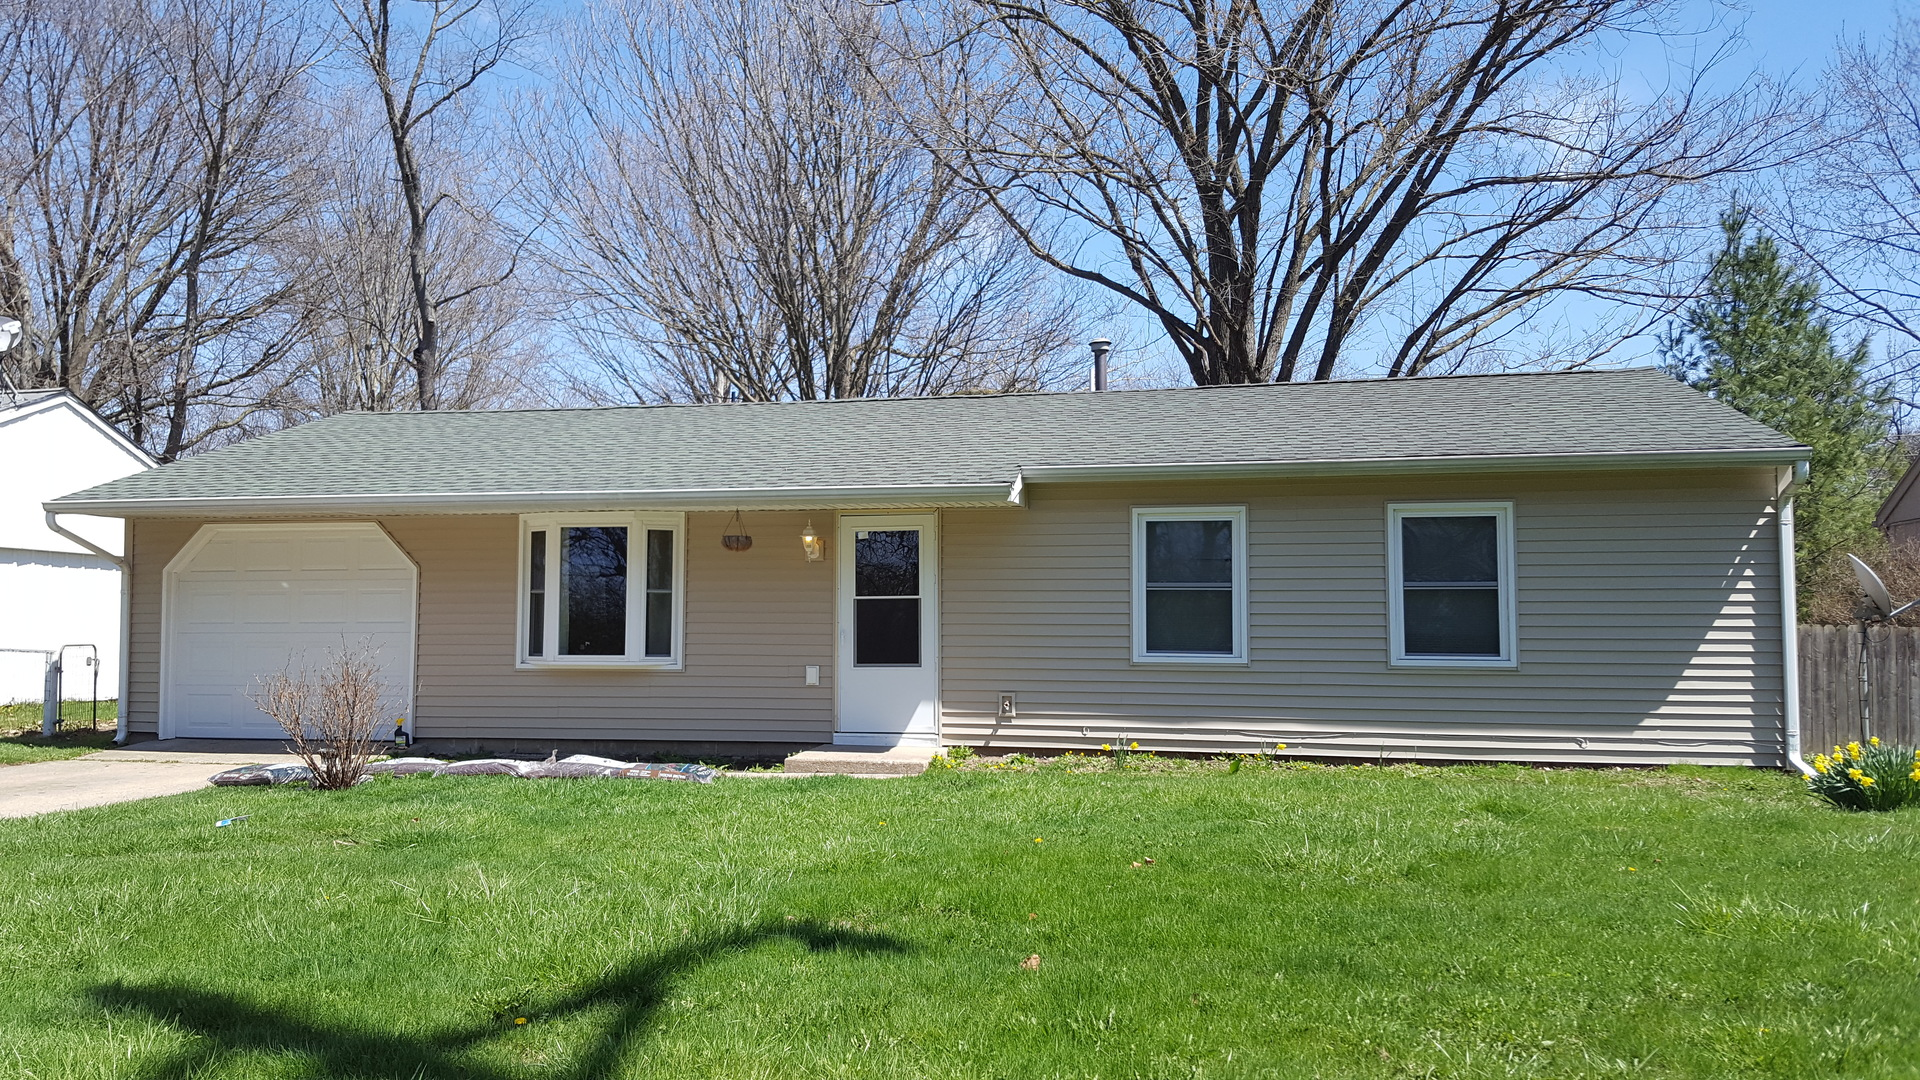 1310 South Duncan Road, Champaign in Champaign County, IL 61821 Home for Sale